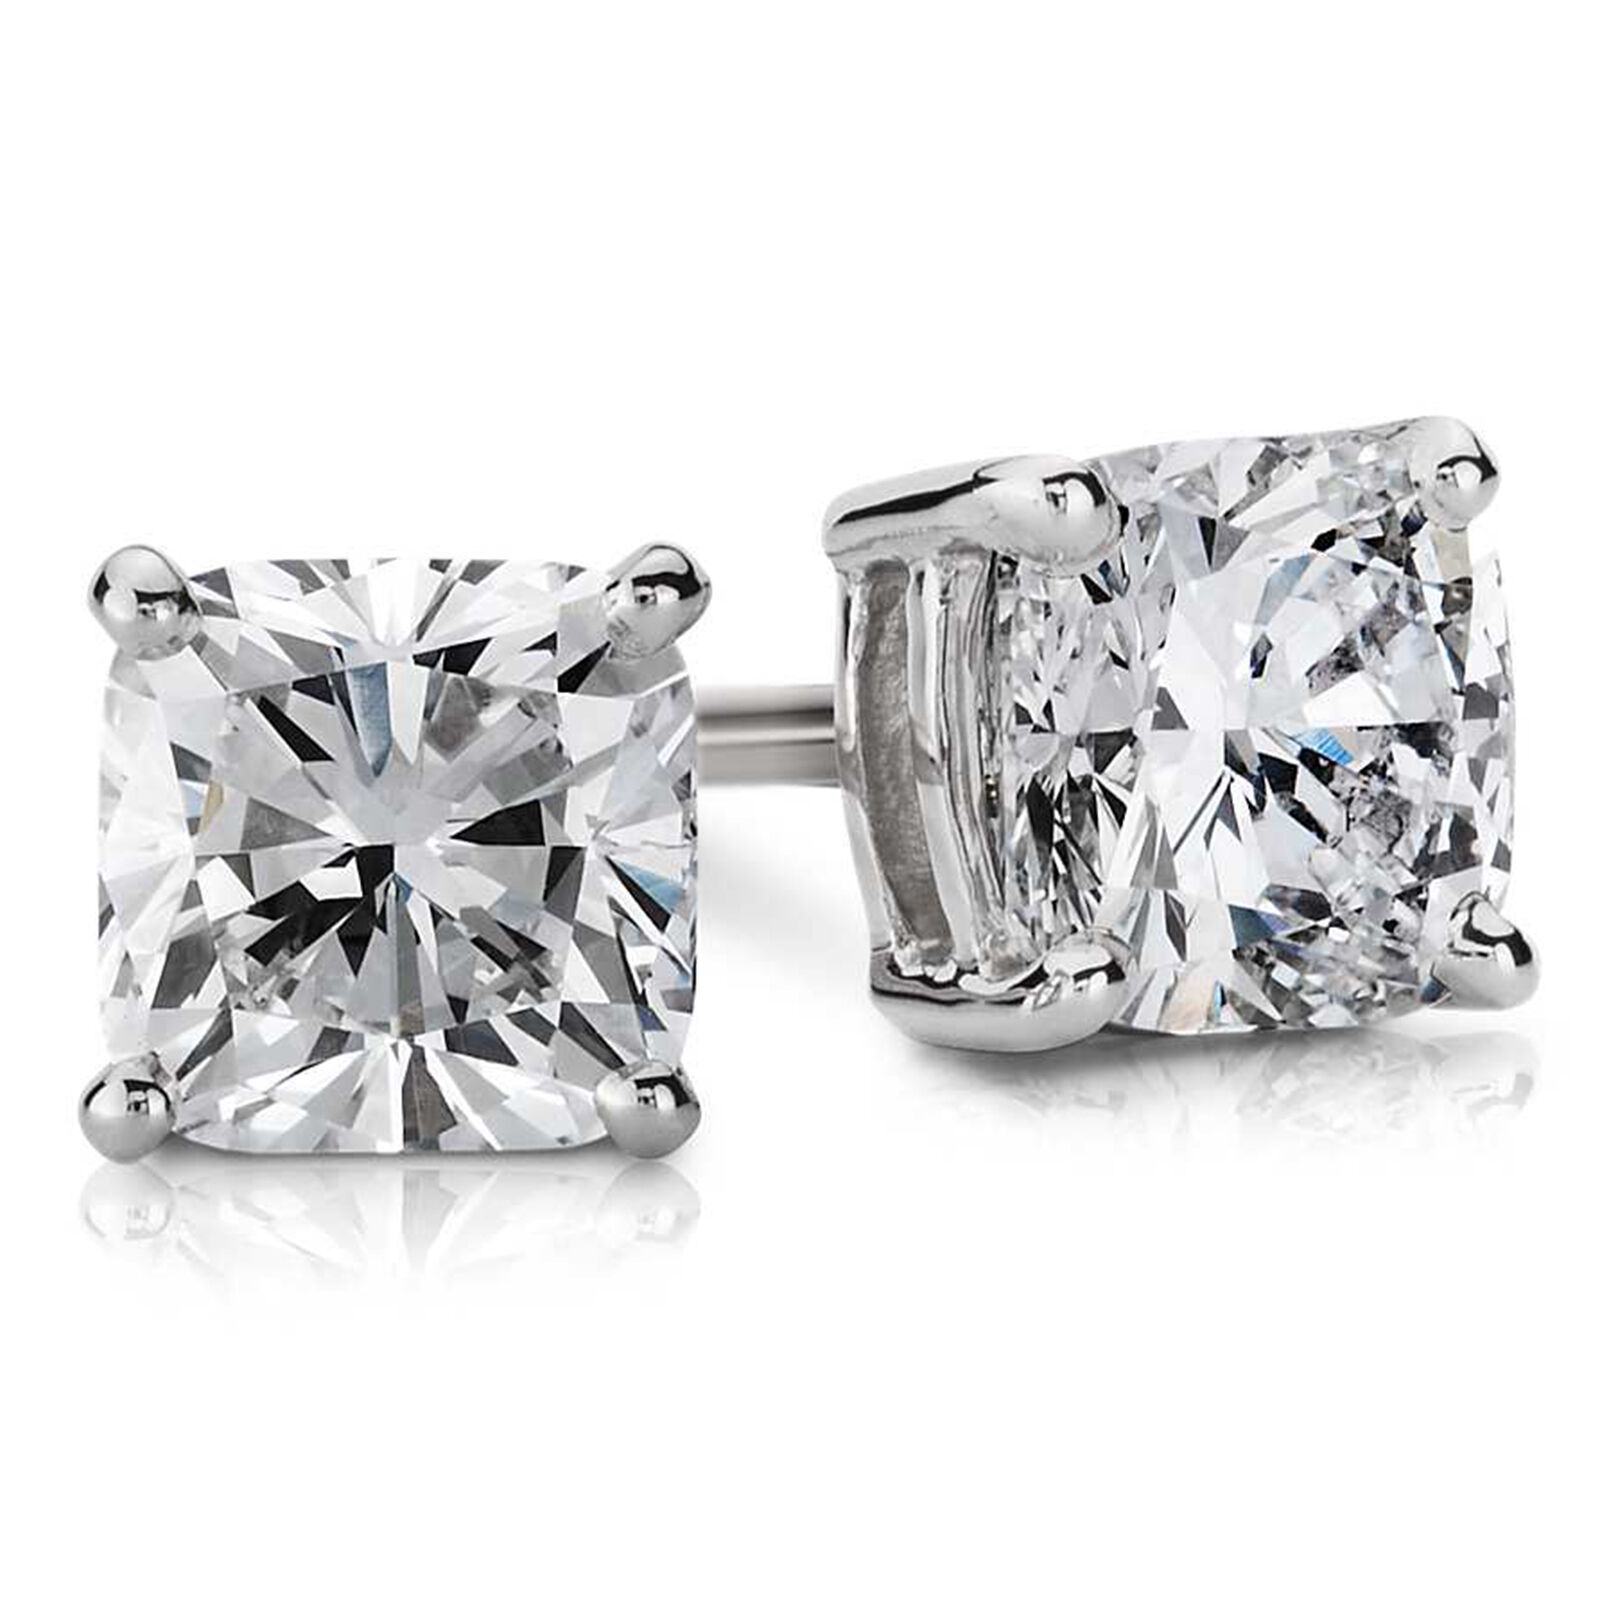 4.00Ct Diamond Earrings Hallmarked 14K White gold Stud Solitaire Womens Studs